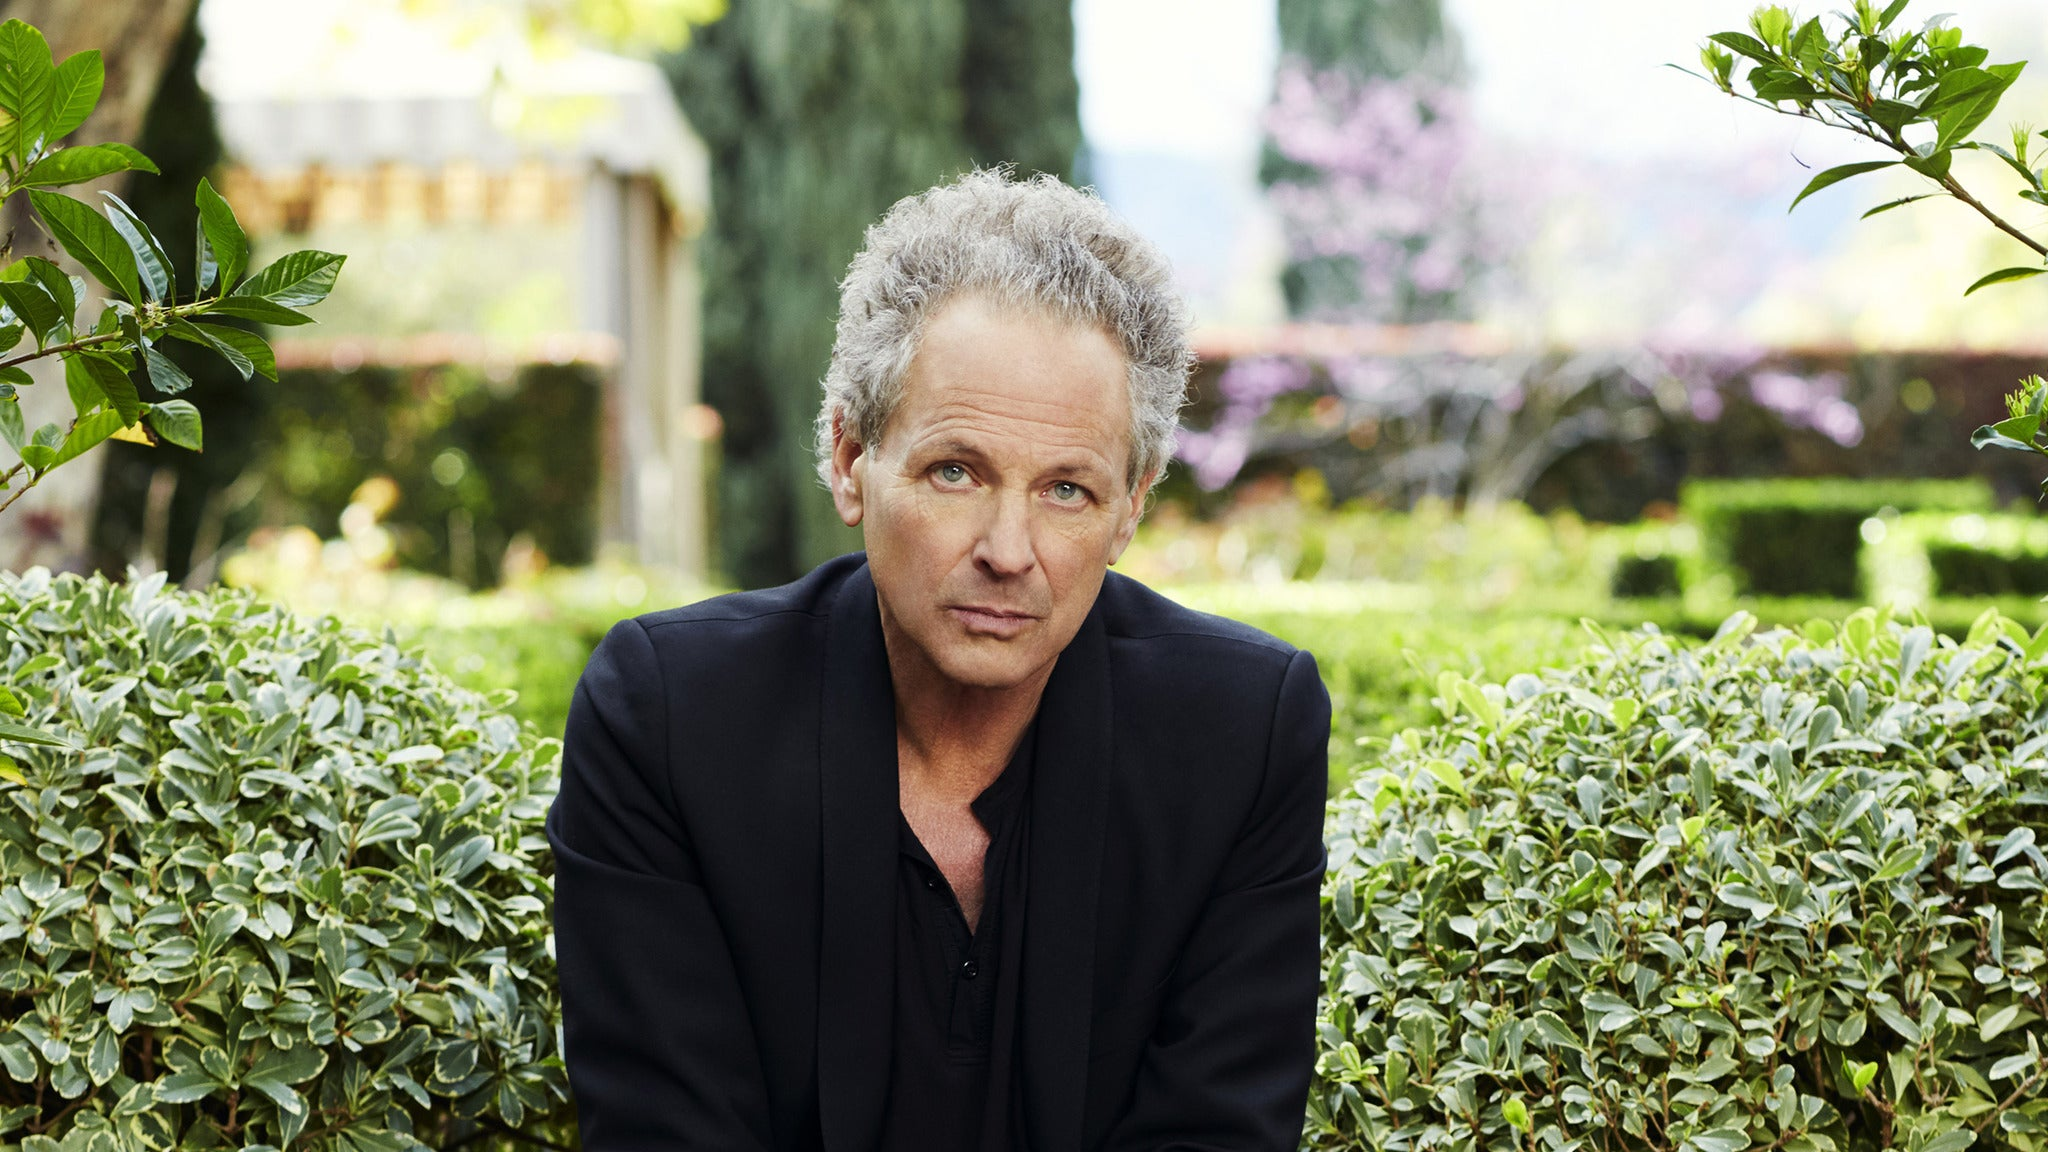 Lindsey Buckingham at Garde Arts Center - New London, CT 06320